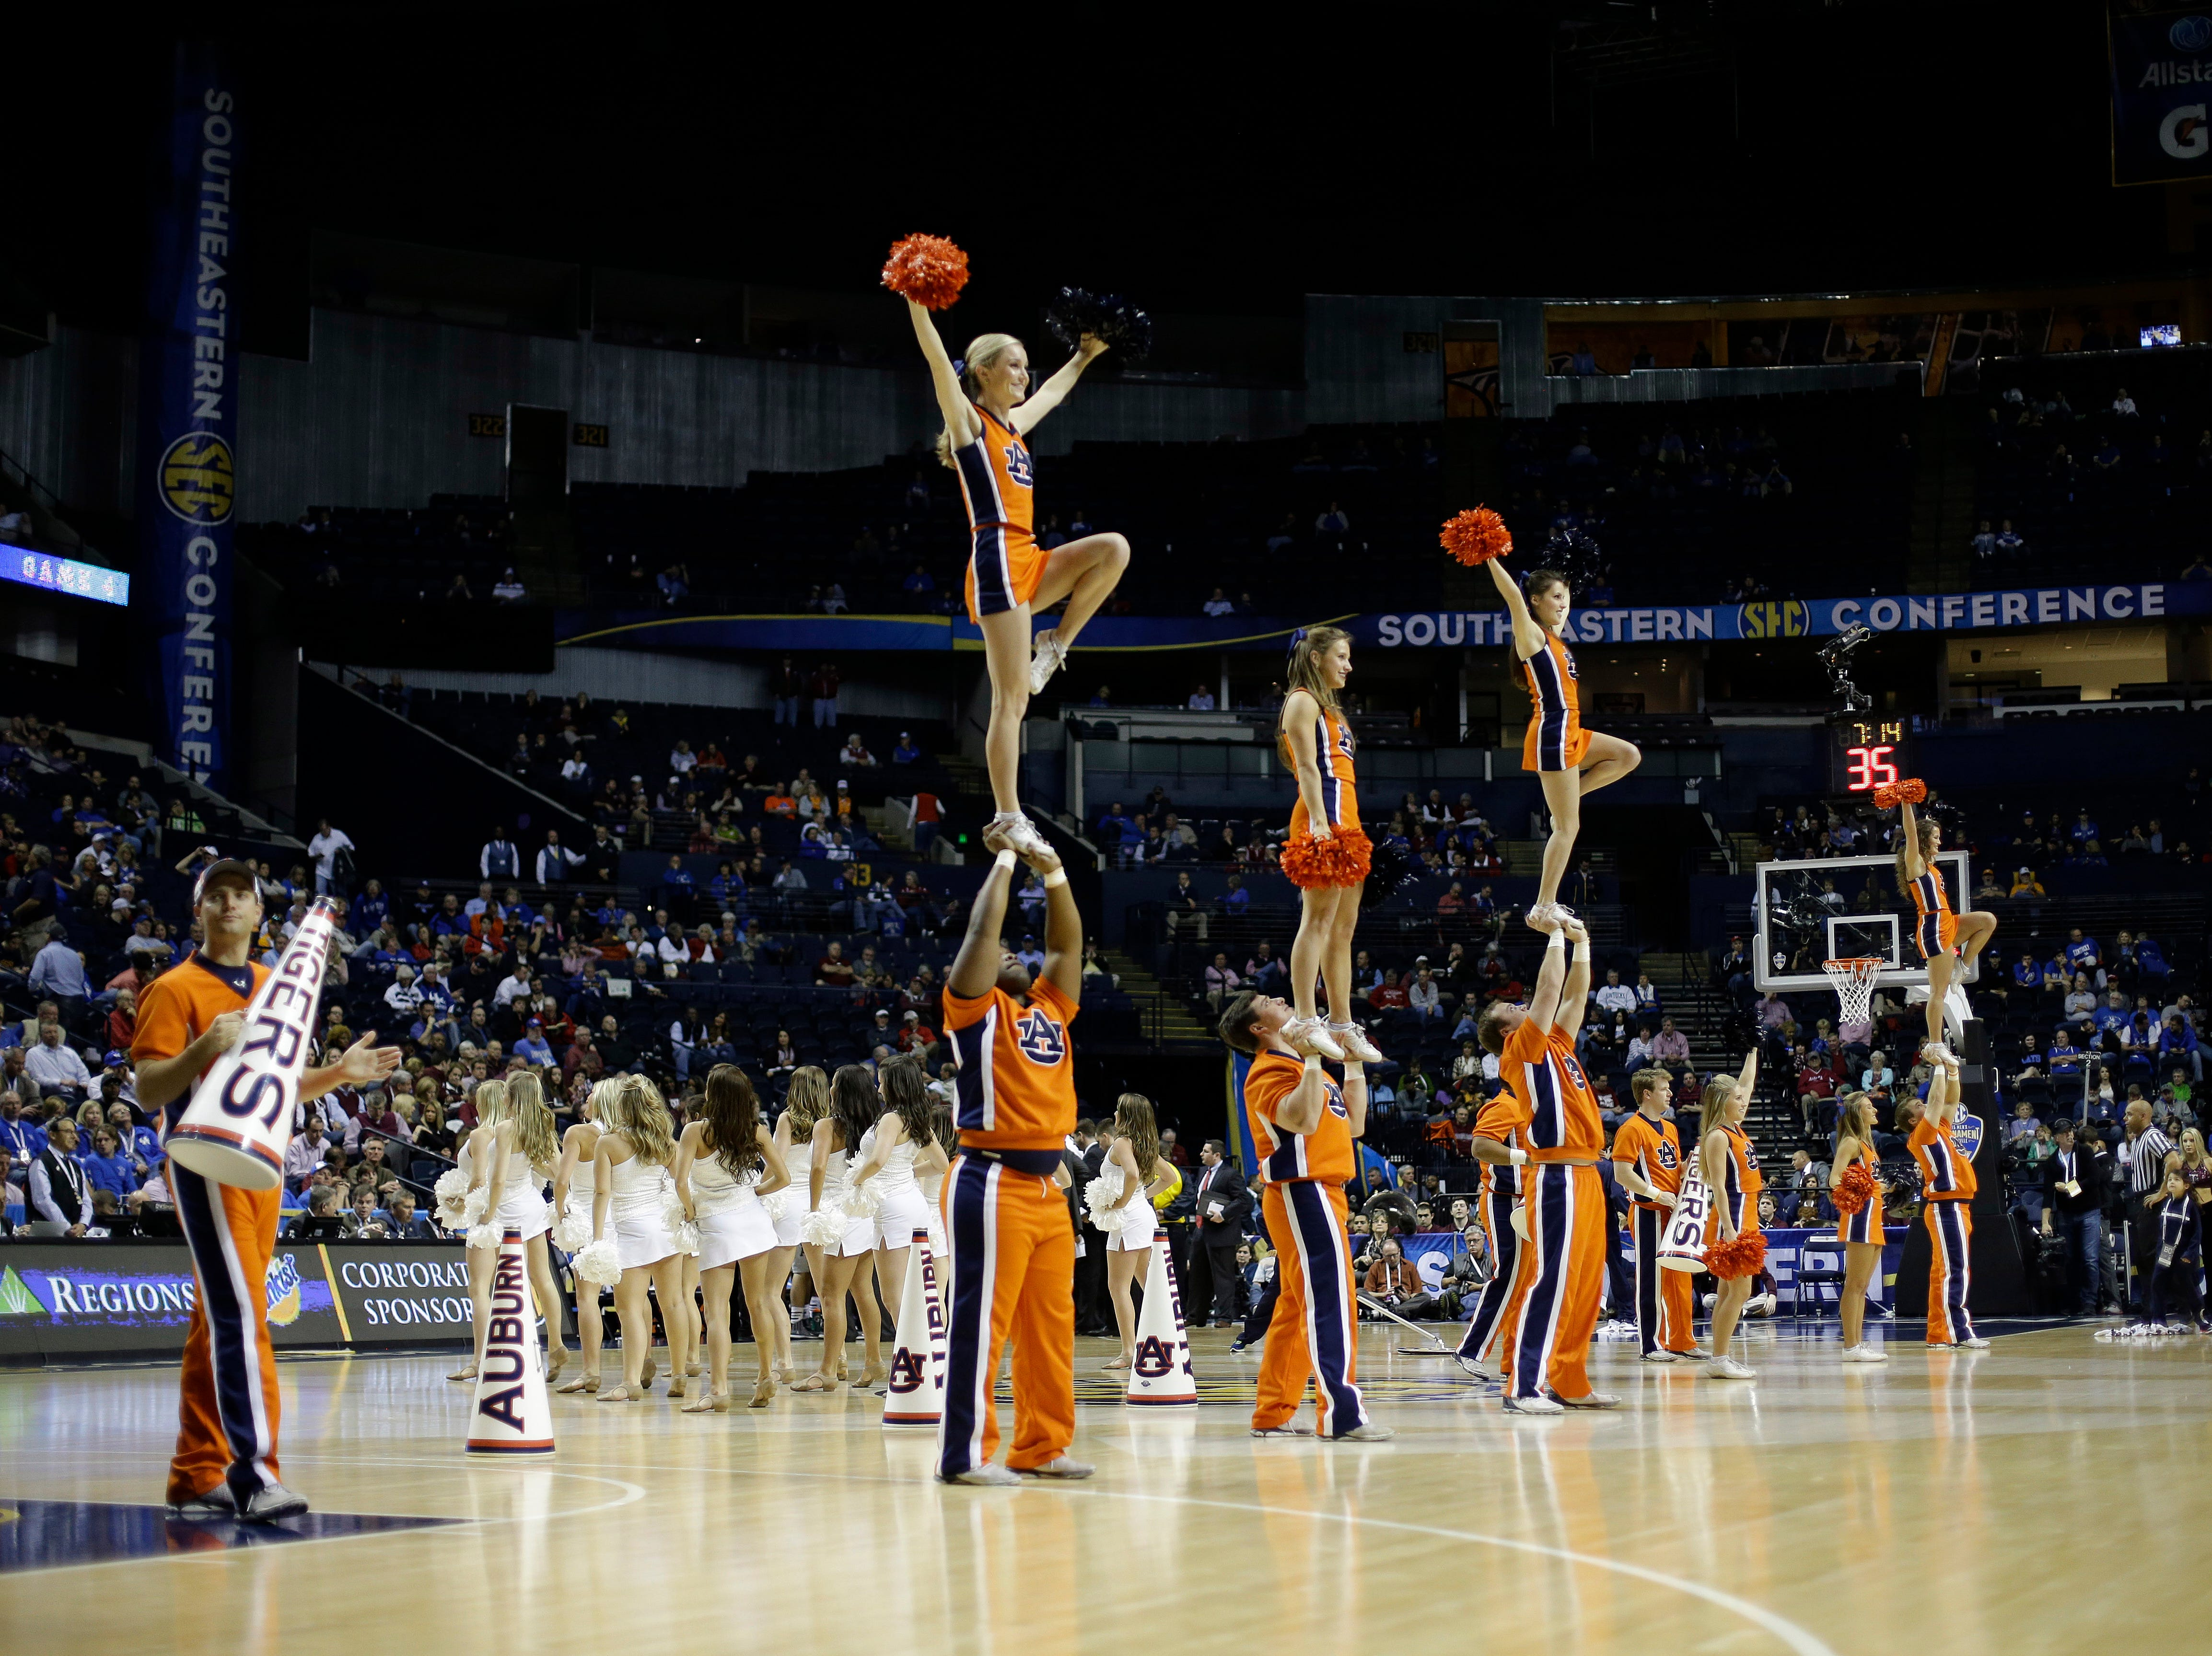 Auburn cheerleaders perform during the second half of an NCAA college basketball game in the second round of the Southeastern Conference tournament between Texas A&M and Auburn, Thursday, March 12, 2015, in Nashville, Tenn. (AP Photo/Mark Humphrey)